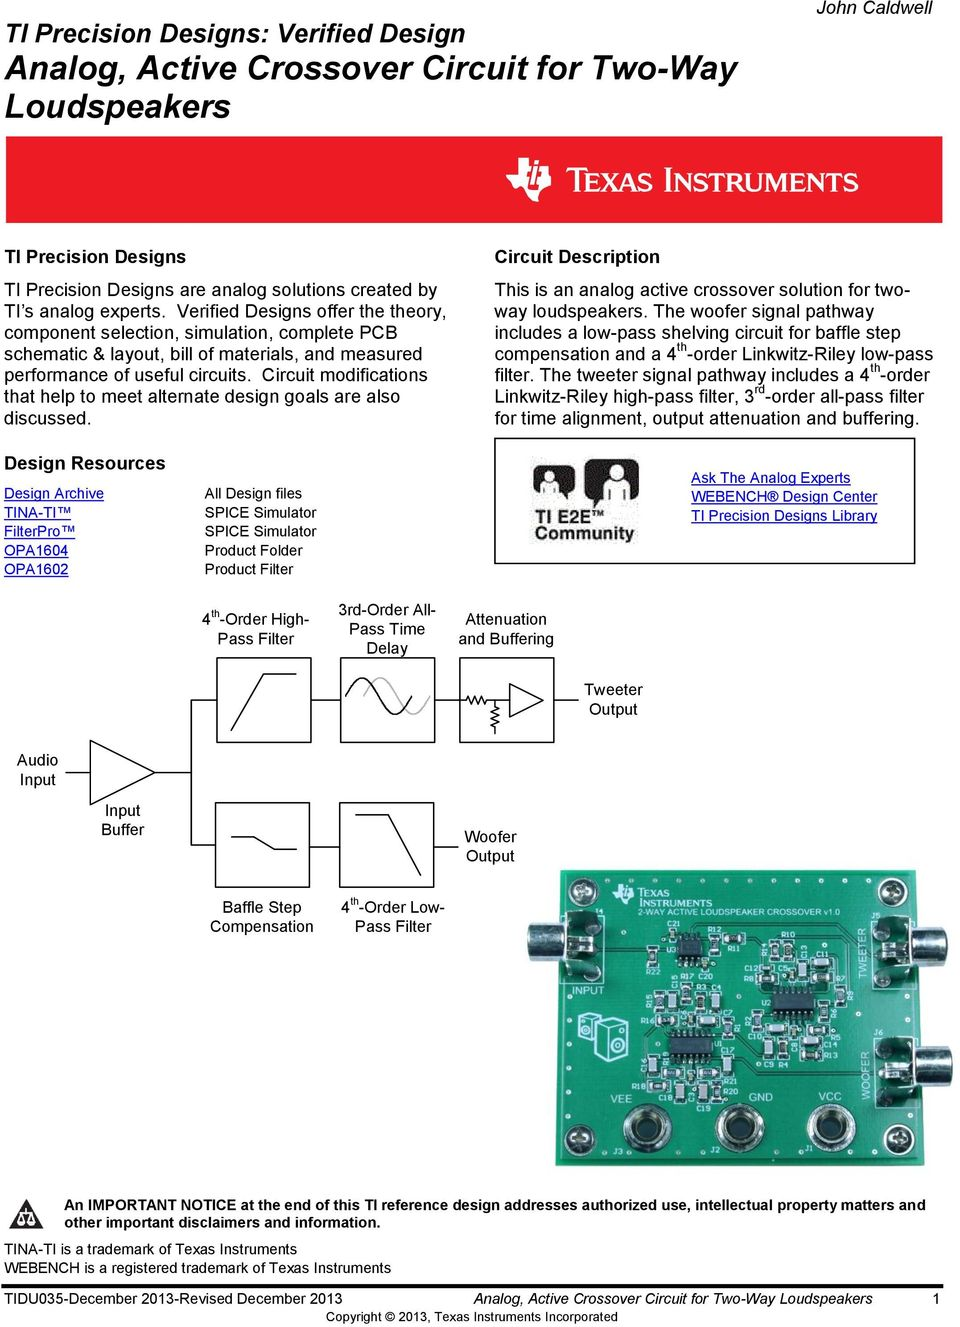 Ti Precision Designs Verified Design Analog Active Crossover Speaker Circuit Diagram On Two Way For Loudspeakers 1 Modifications That Help To Meet Alternate Goals Are Also Discussed